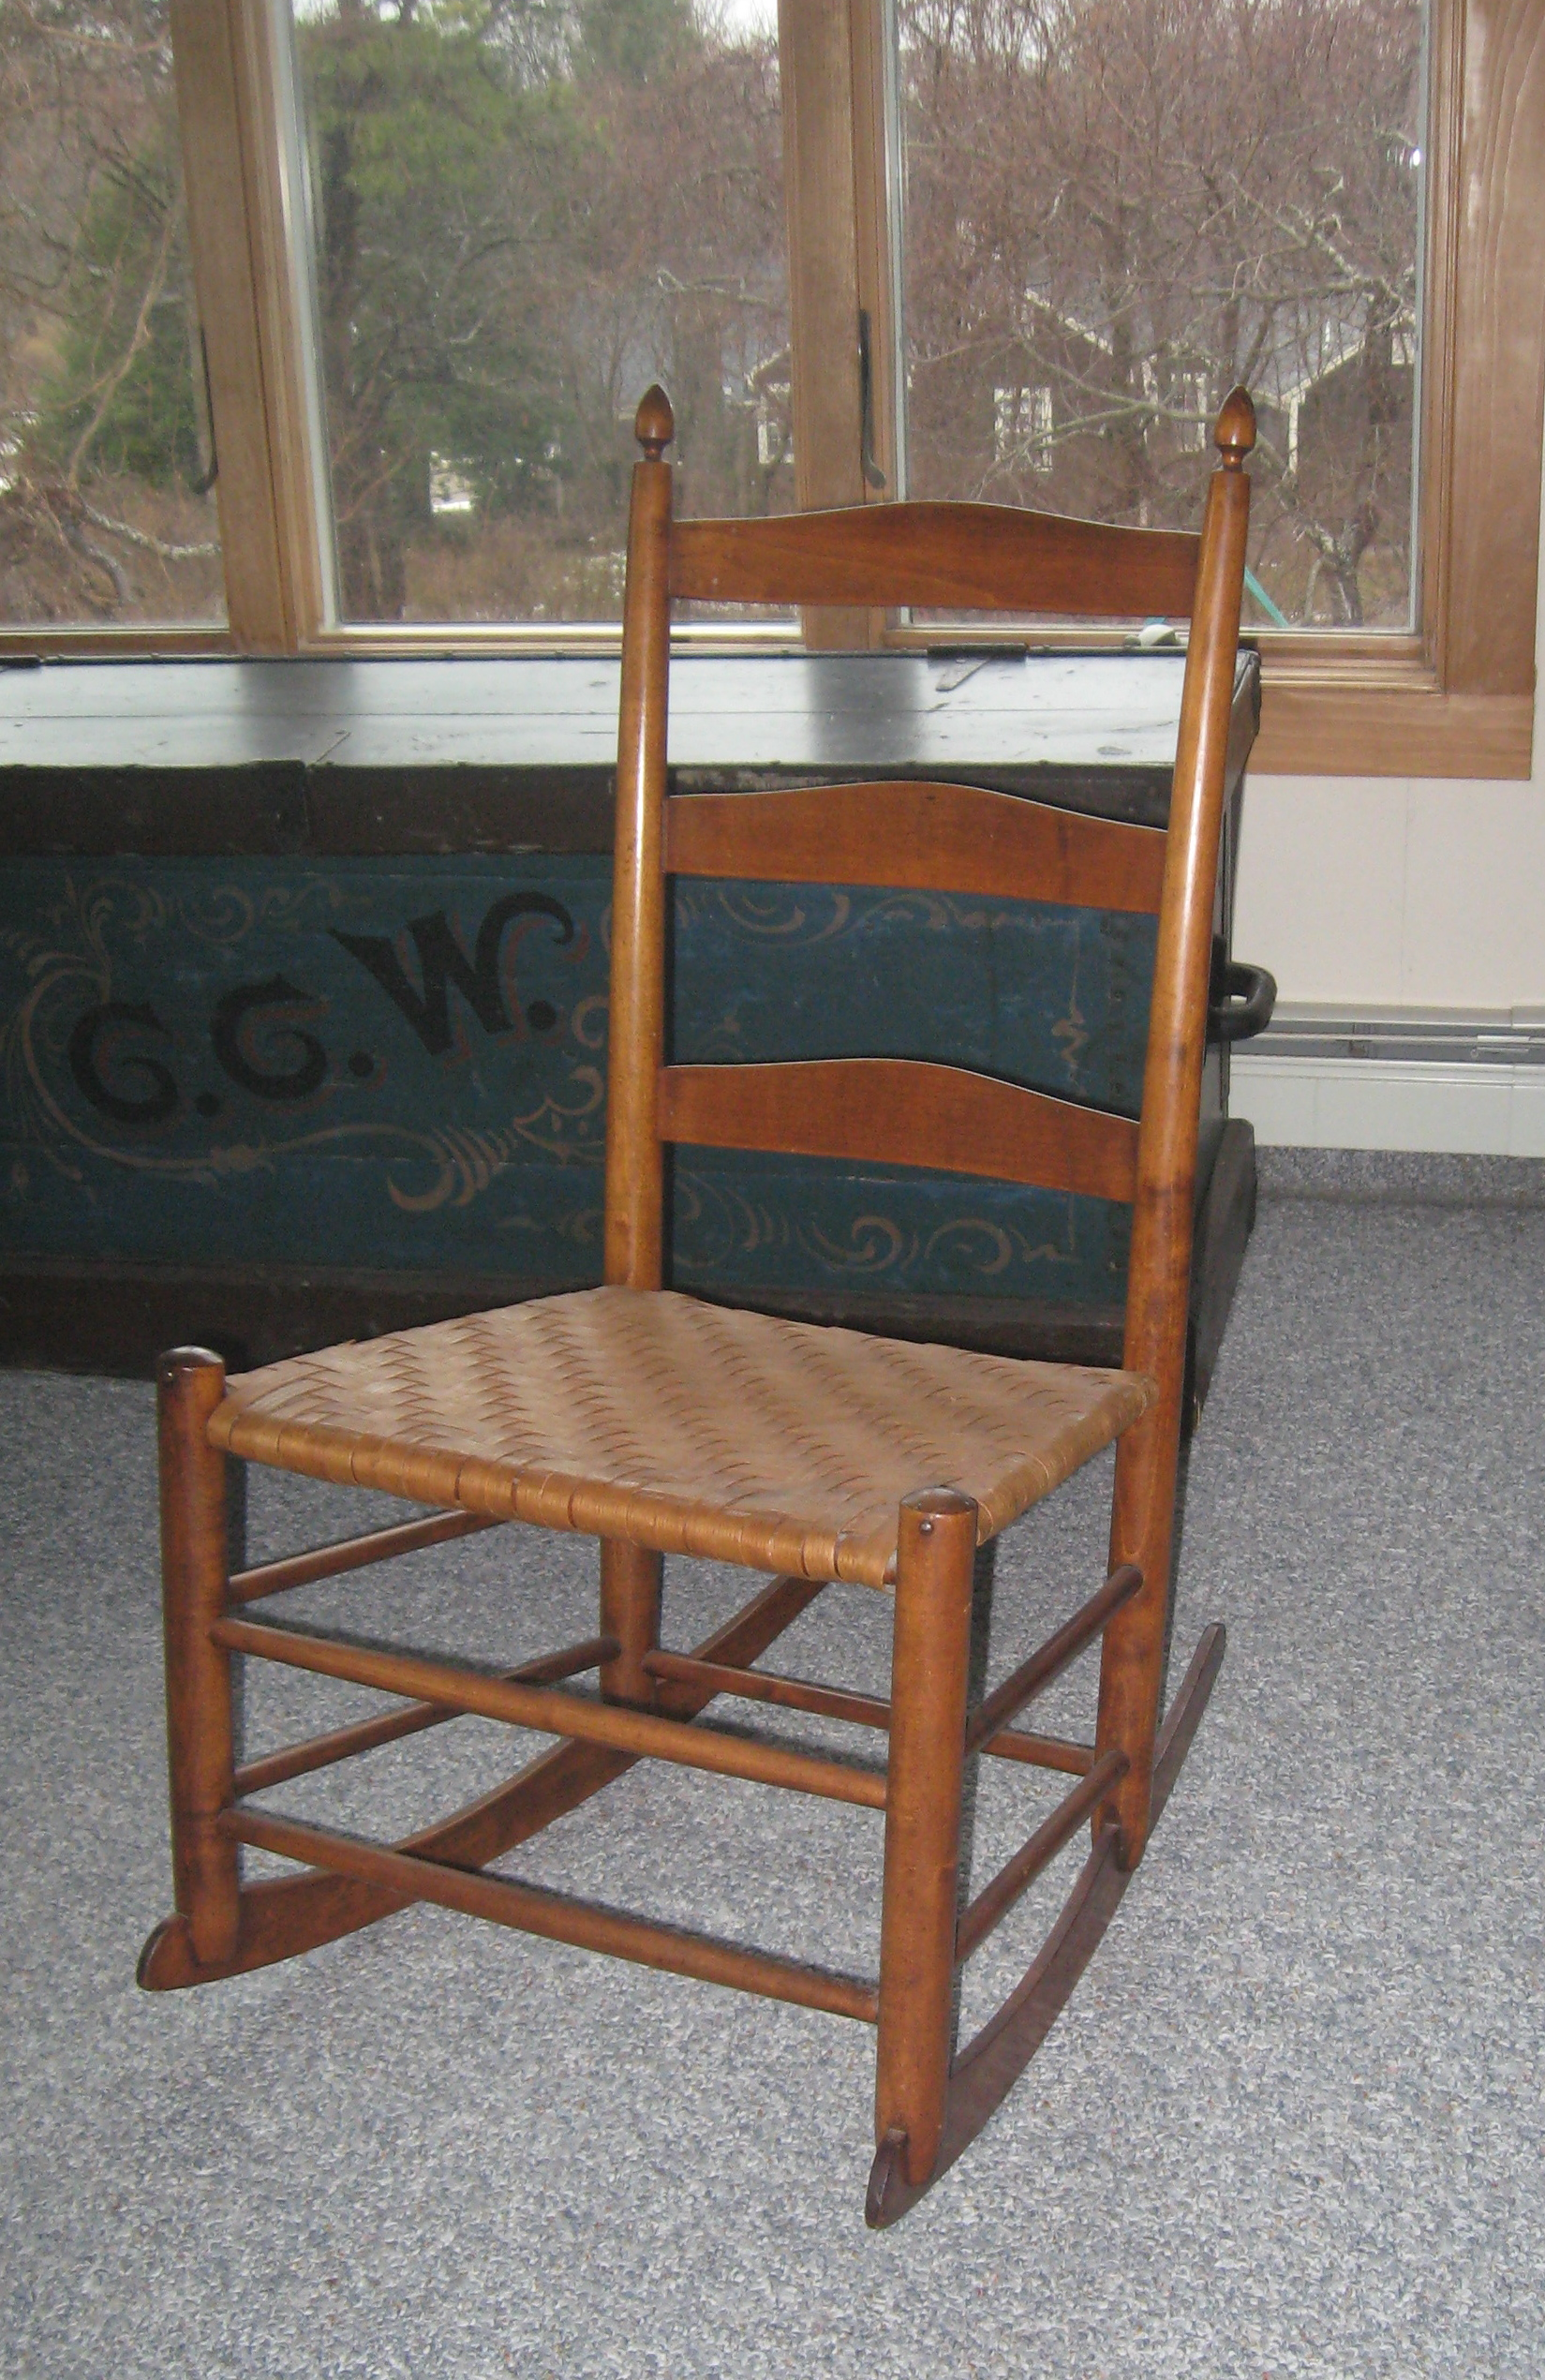 Antique shaker chairs - Antique Shaker Chairs 33